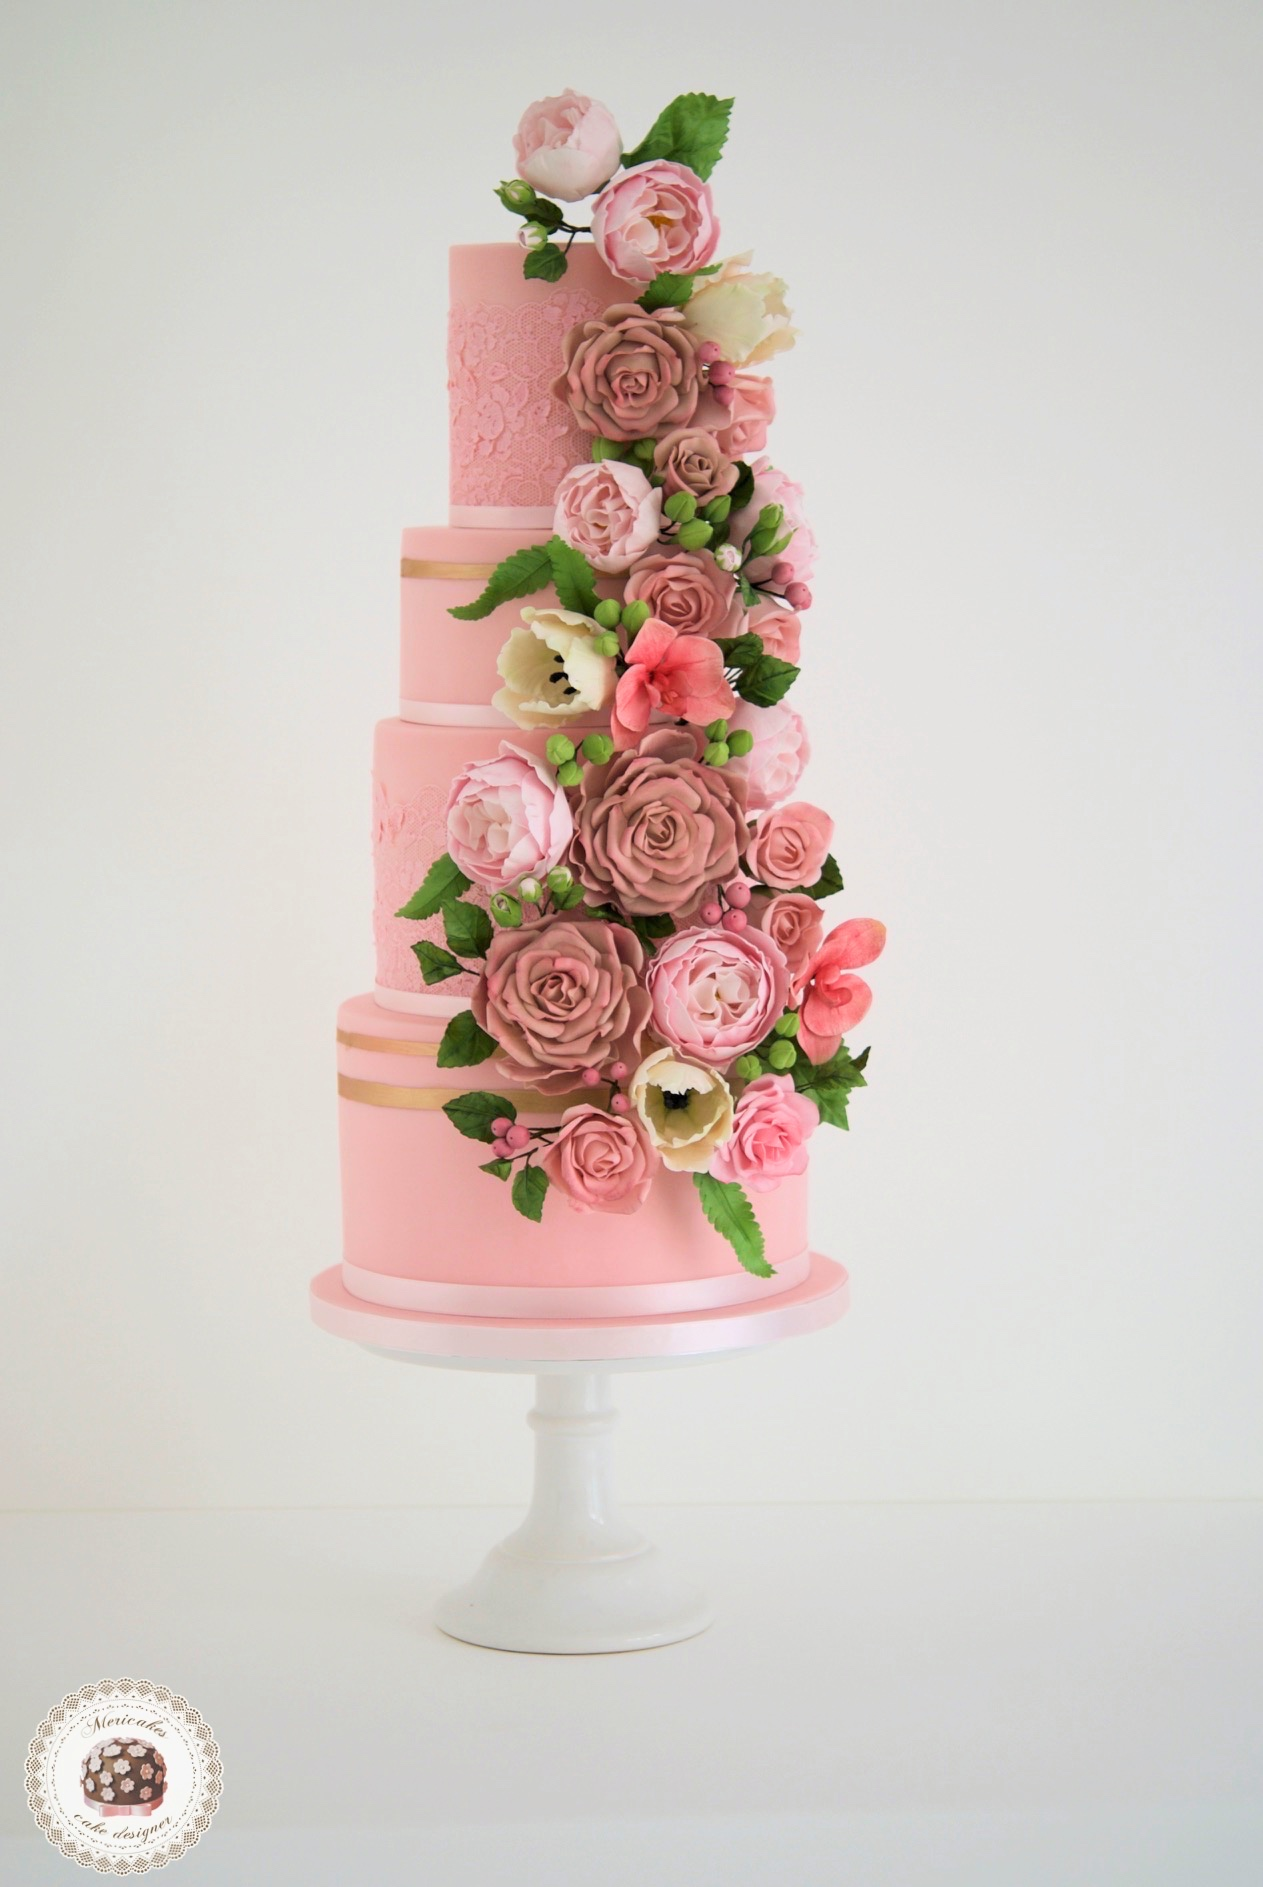 Light Pink fondant wedding cake with cascading gum paste sugar roses